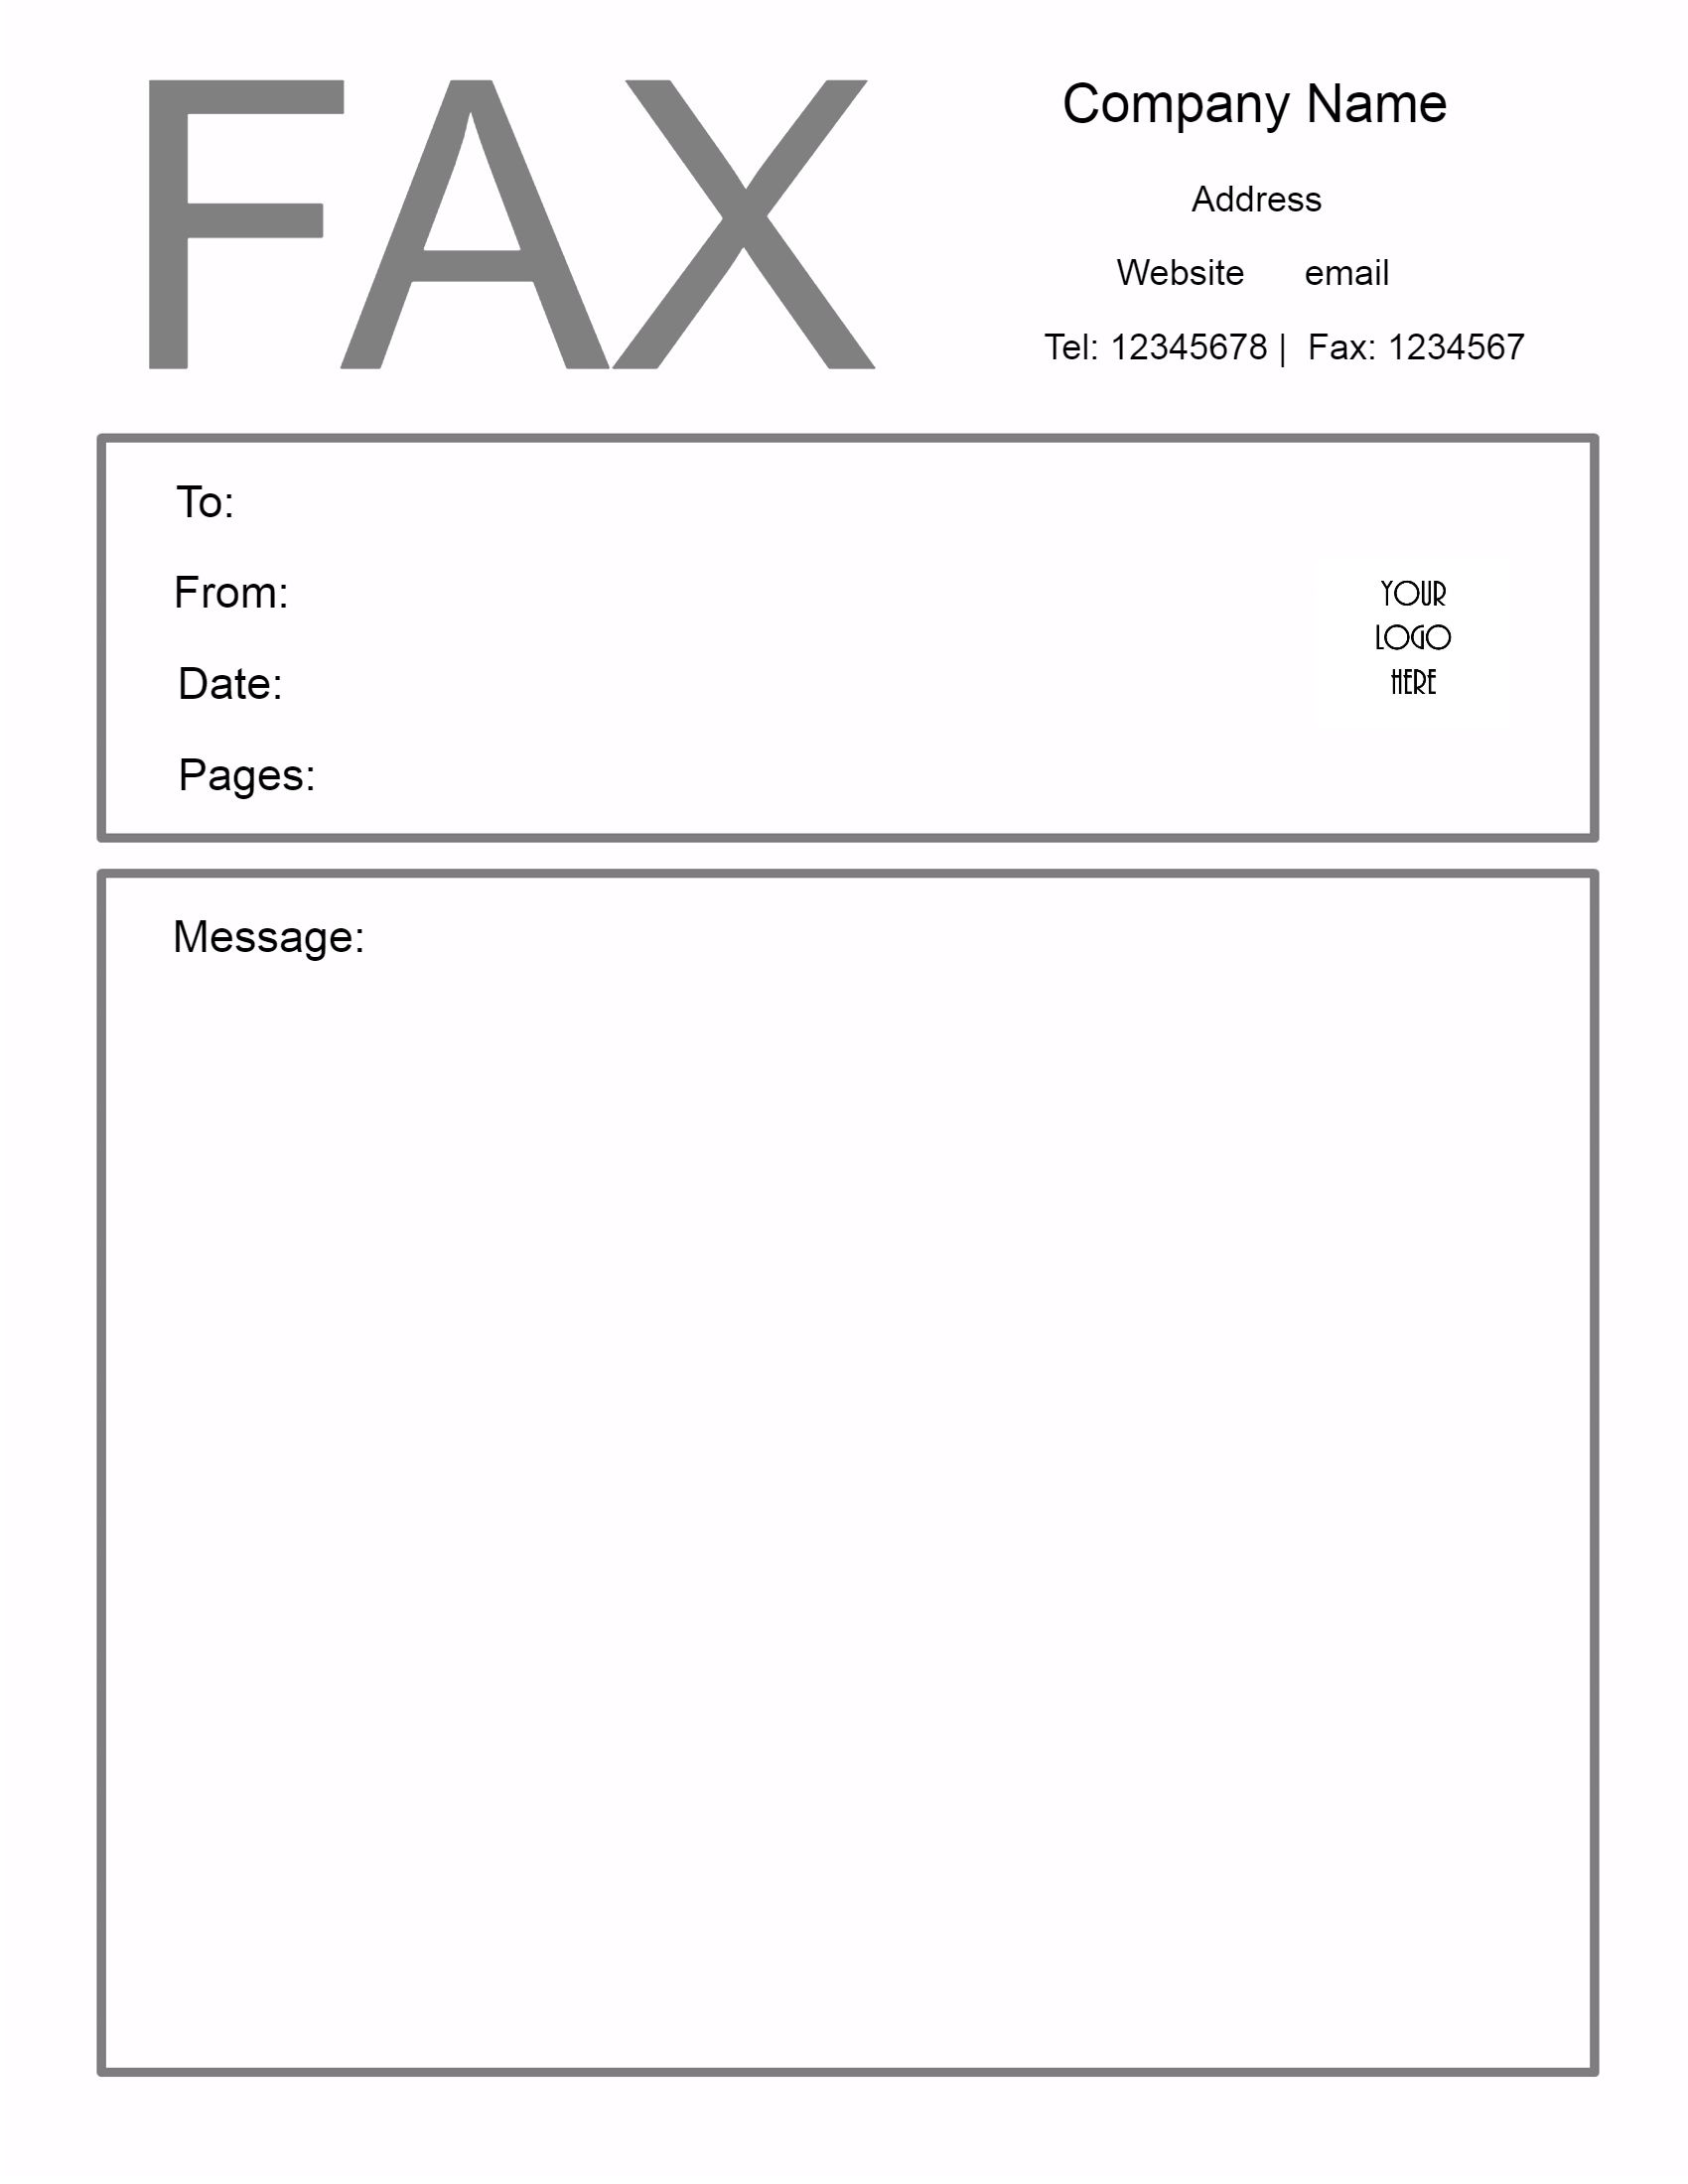 Free Fax Cover Sheet Template Customize Online Then Print